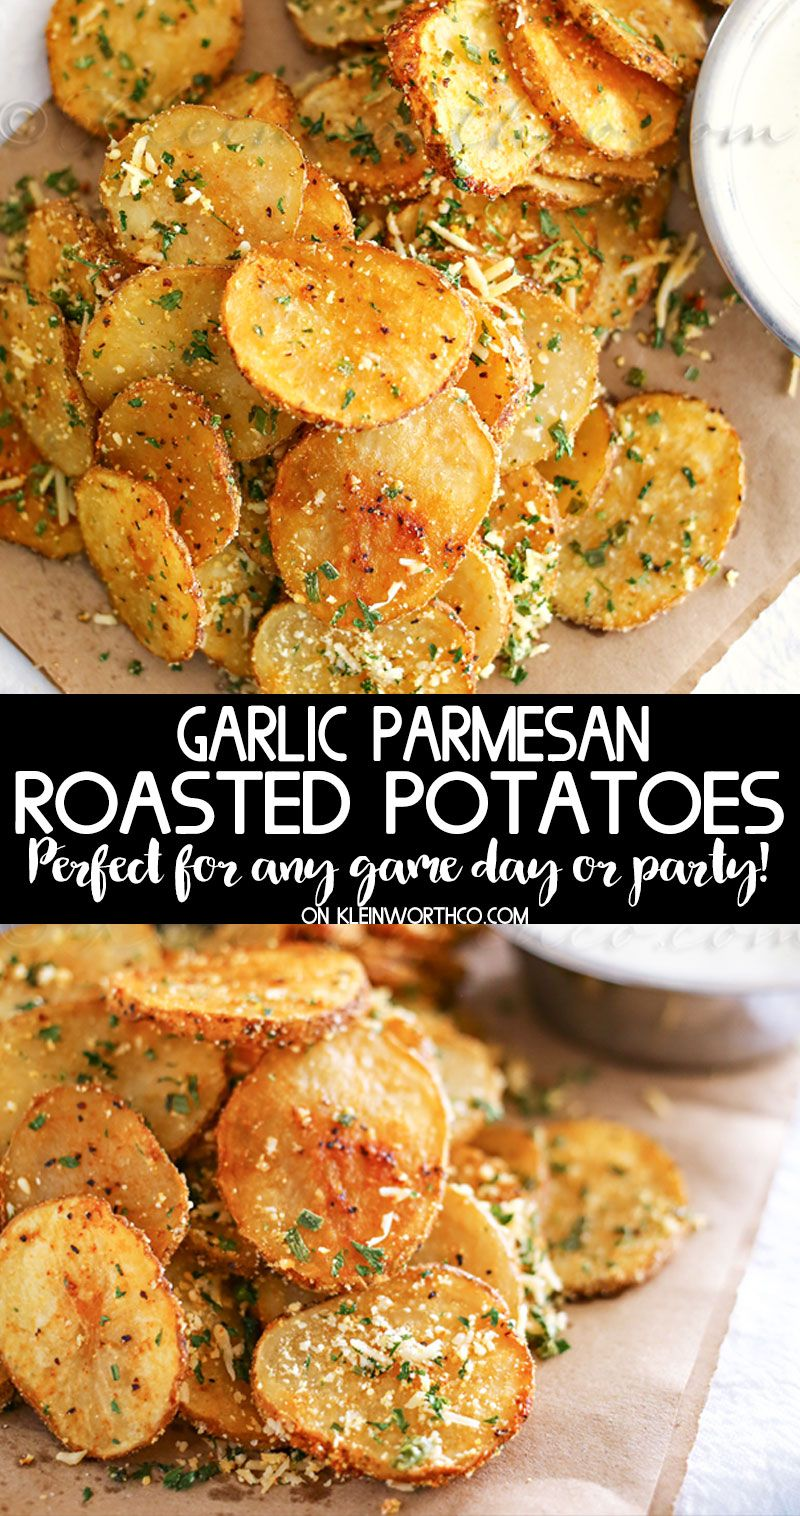 Parmesan Roasted Potatoes are just another one of my Easy Family Dinner Ideas that are simple to make. If you need easy side dishes this one is perfect. #dinnerideas